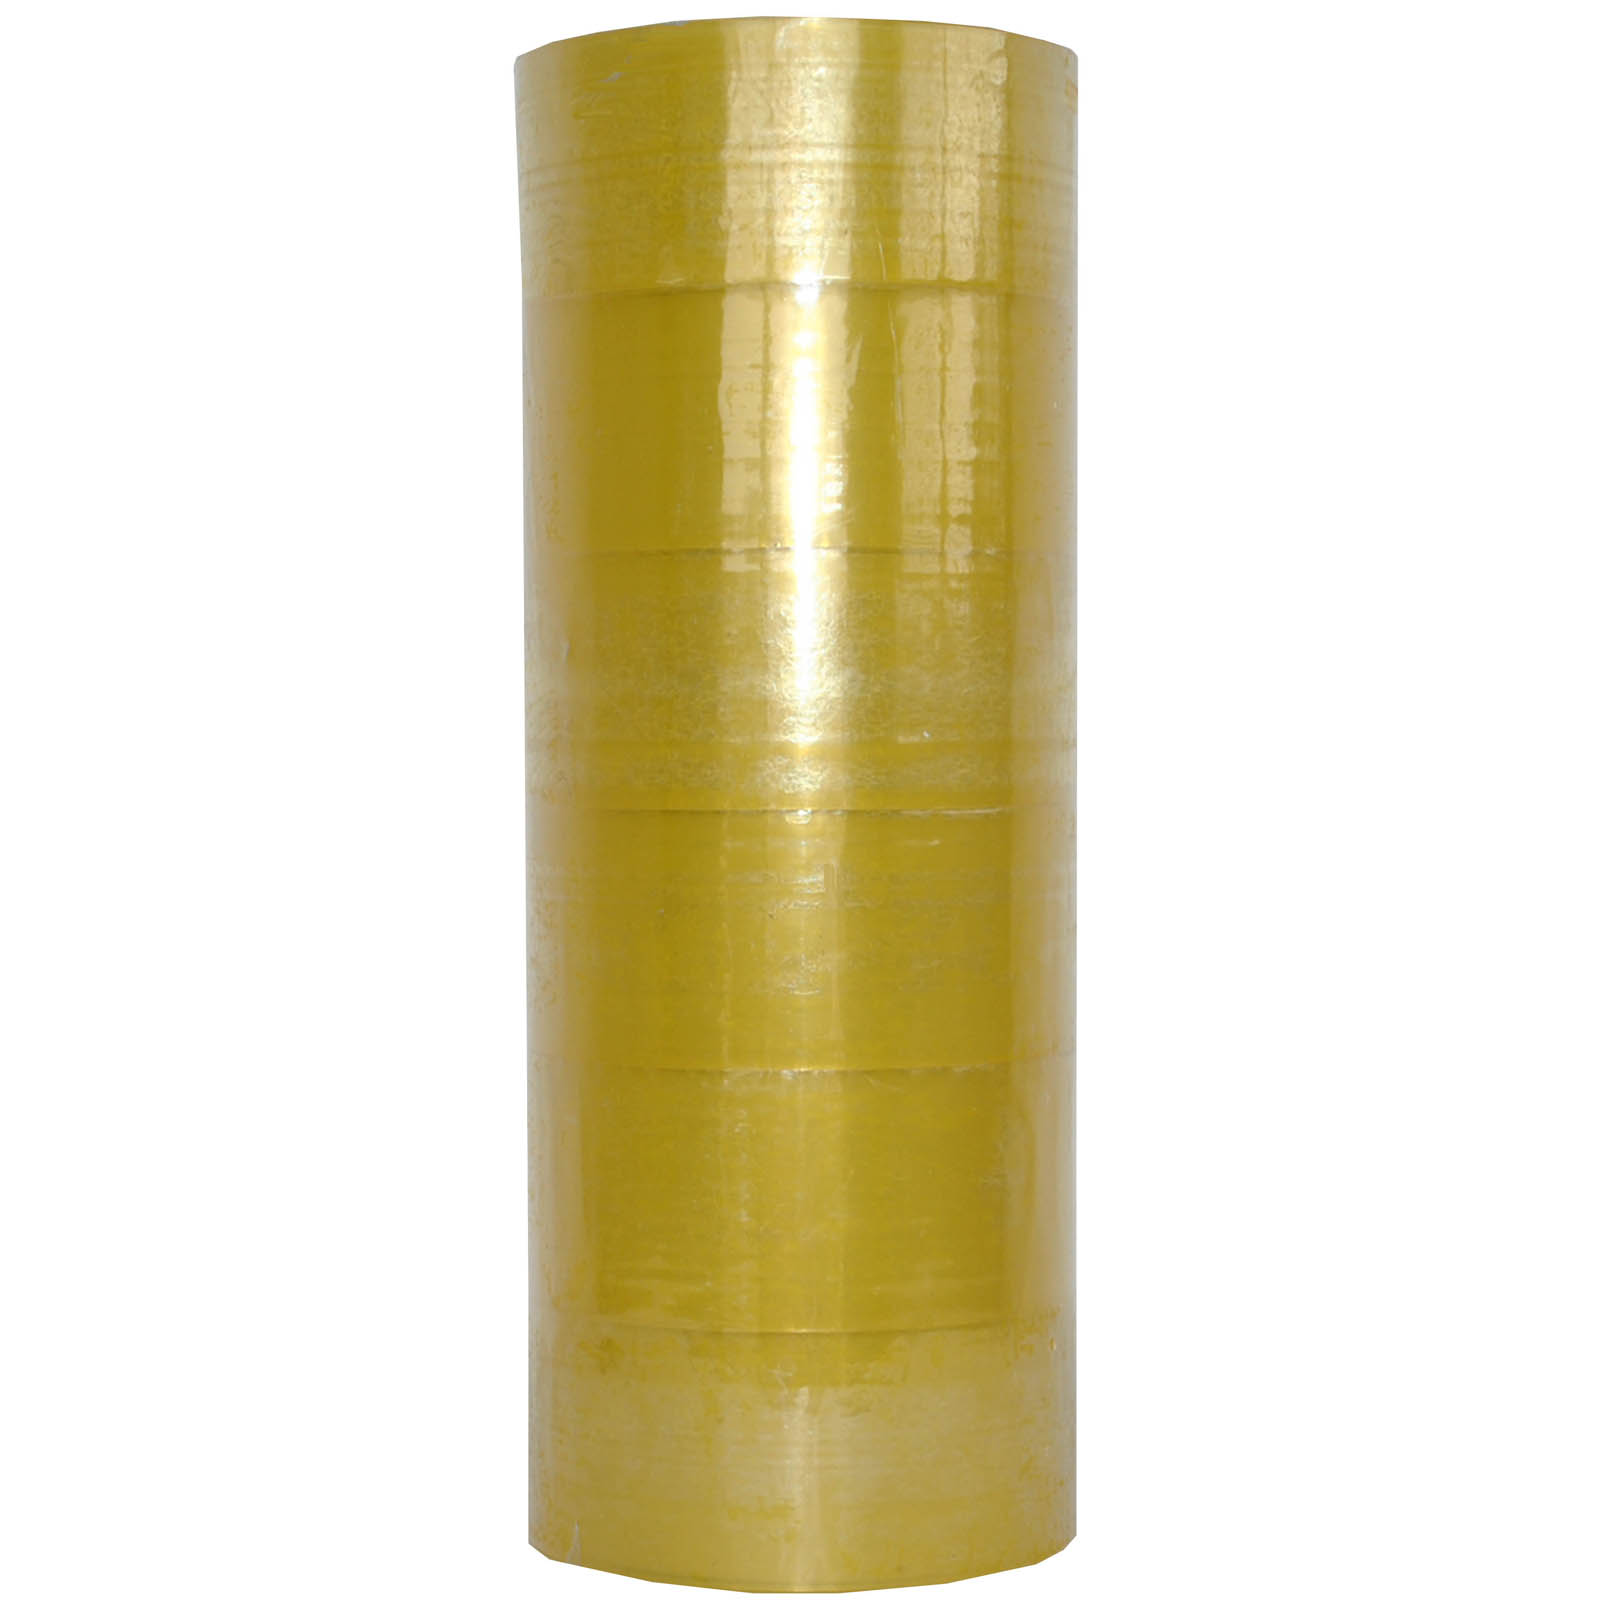 "Packing Tape, 4""(90 mm) x 99 Yards, 6 Rolls, Transparent"